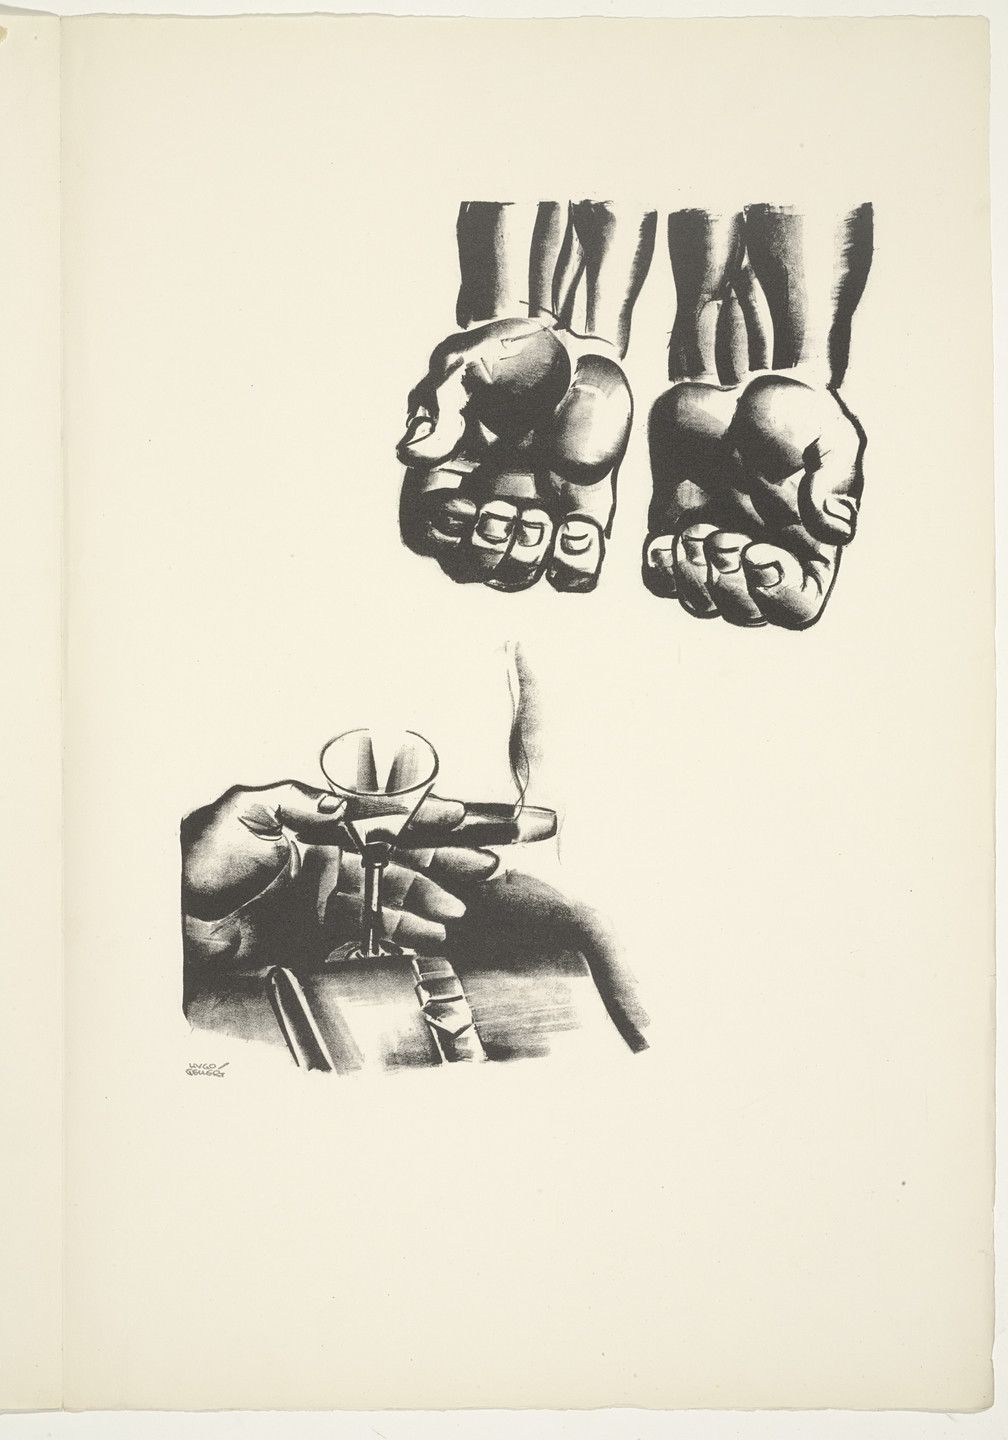 Hugo Gellert. Plate (folio 10) from 'Capital' in Pictures. 1933